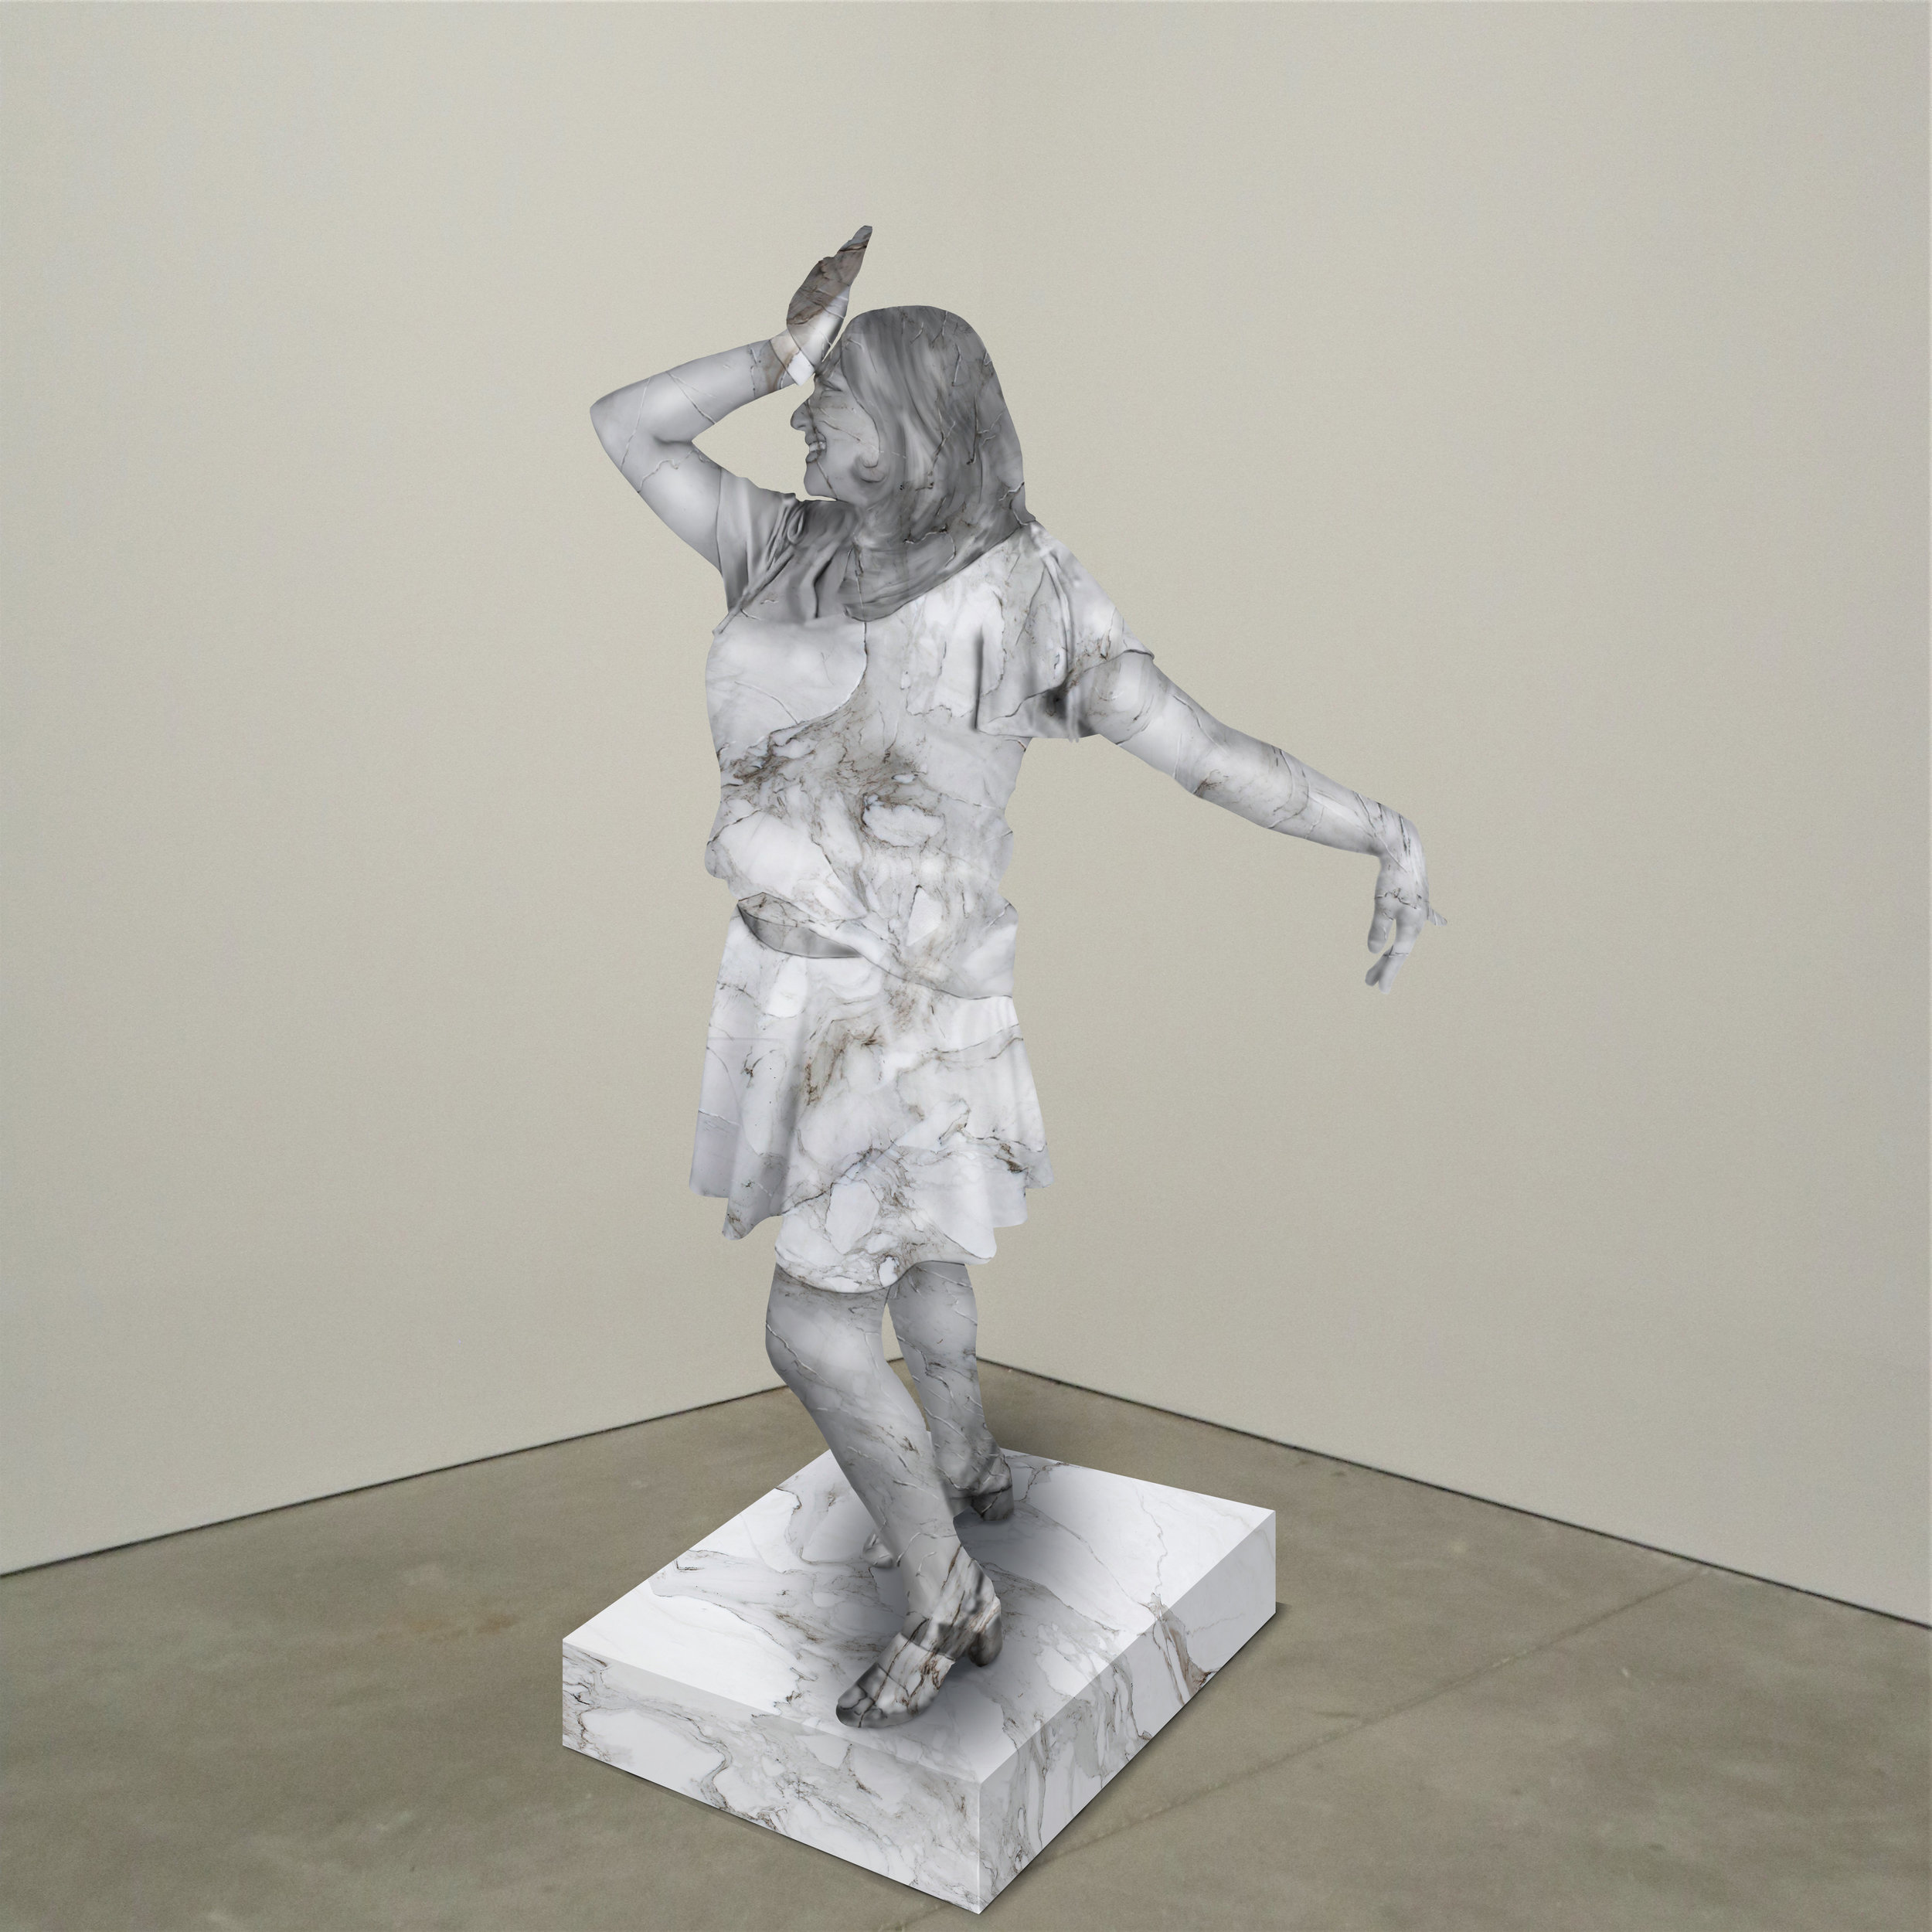 """Bollywood,"" marble, Institute of Contemporary Art, Boston   2018  JPG  During an installation at the Institute of Contemporary Art in Boston, viewers were invited to imagine themselves as statues in the ICA's permanent collection. Participants were photographed posing as a statue they felt represented themselves, created a name for their fictional statue, and selected a stone from which their statue would be made. Professional and amateur digital artists were commissioned to create renderings of the statues, which were superimposed on photos of the ICA's permanent collection gallery space."